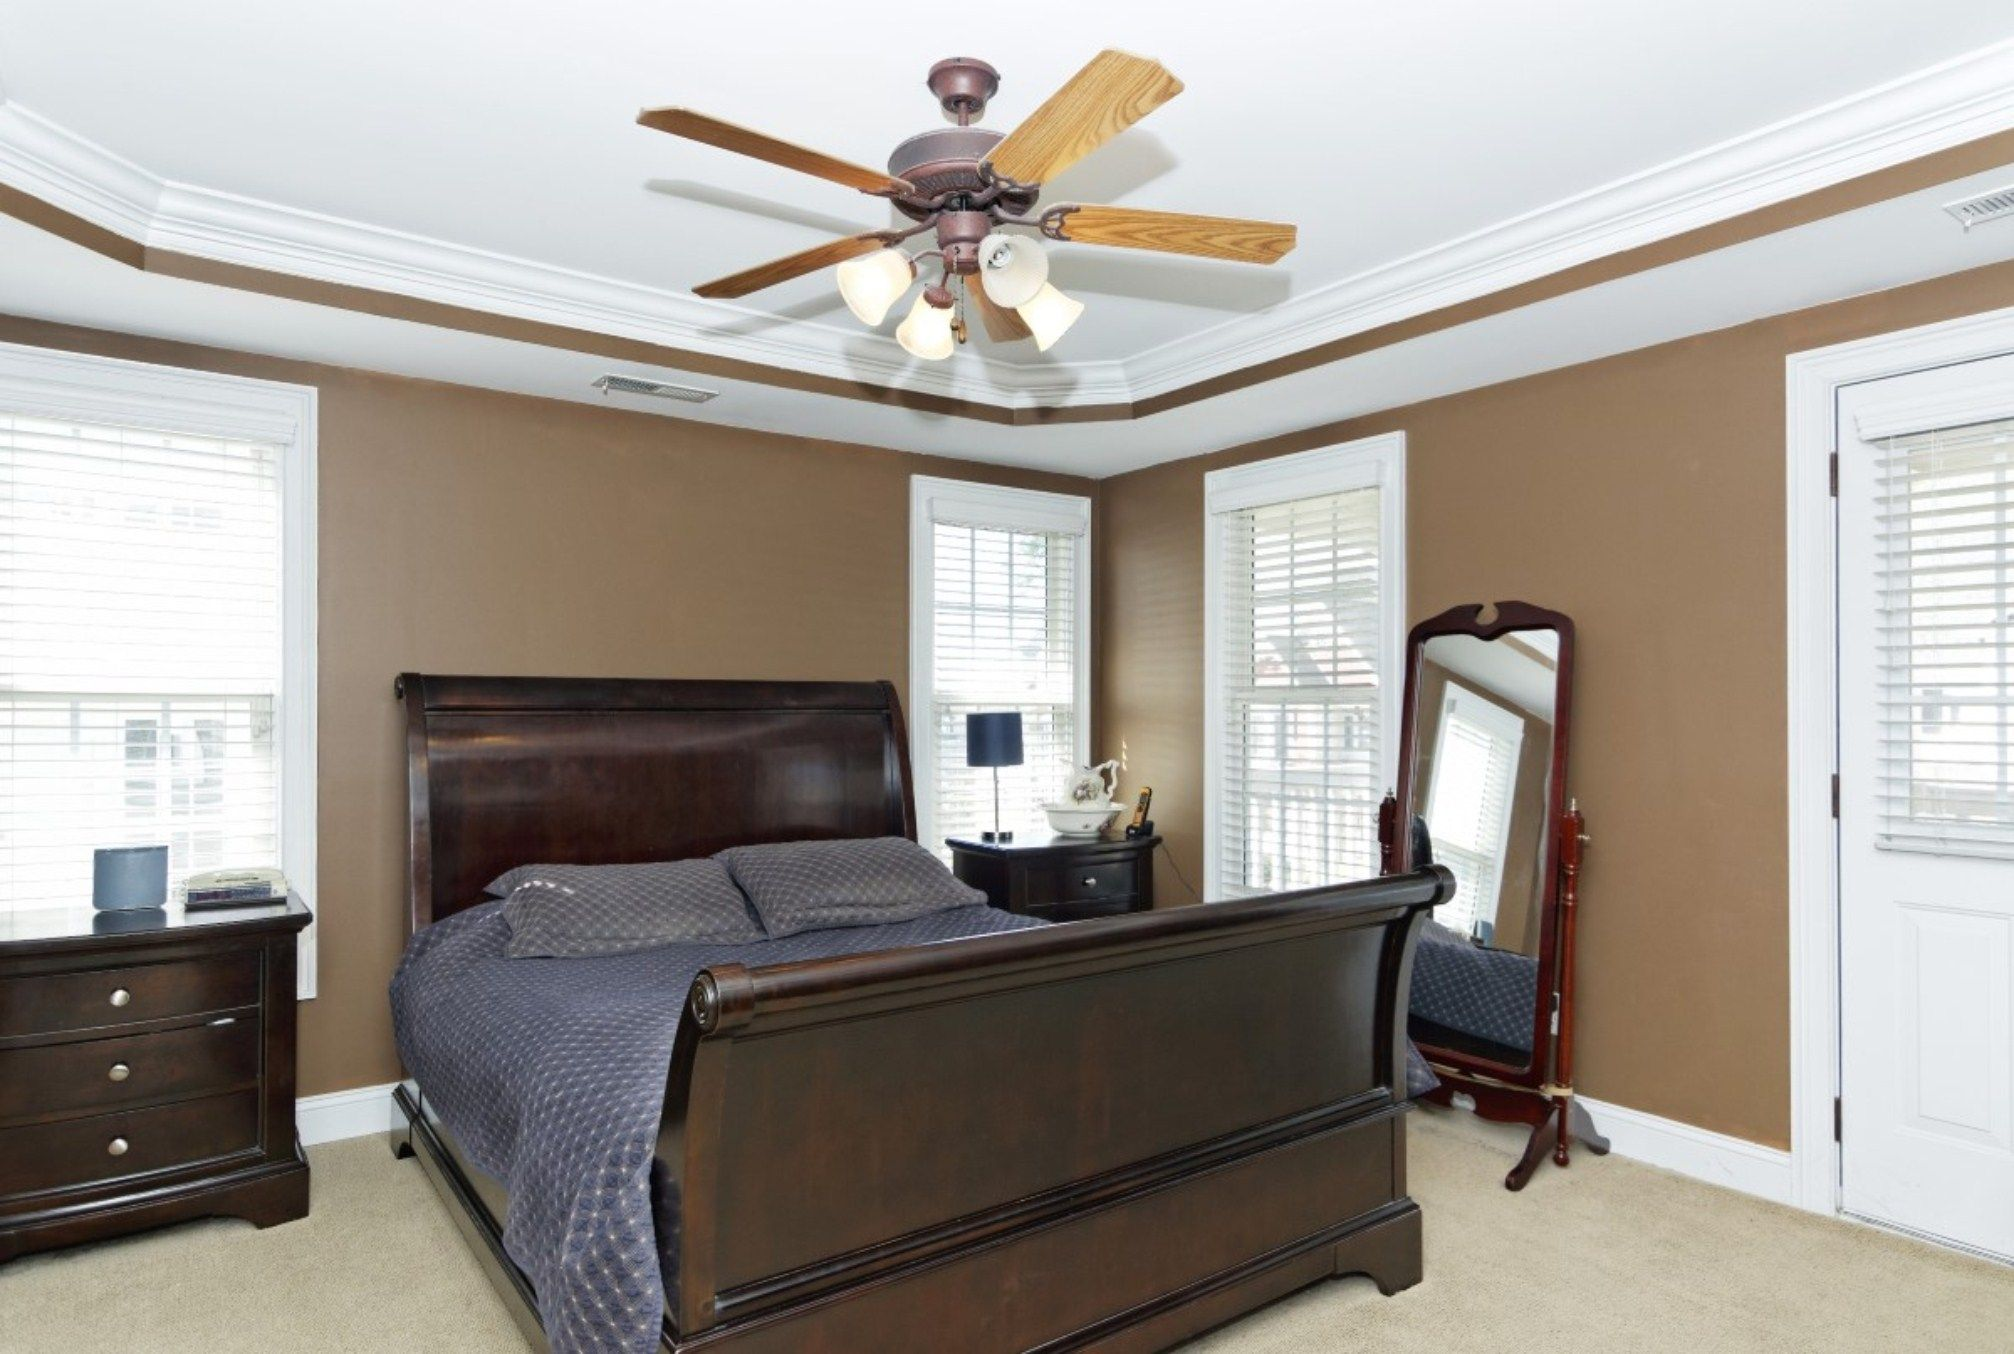 Ideas About Quiet Ceiling Fans Fan And For Bedroom Interalle Decor